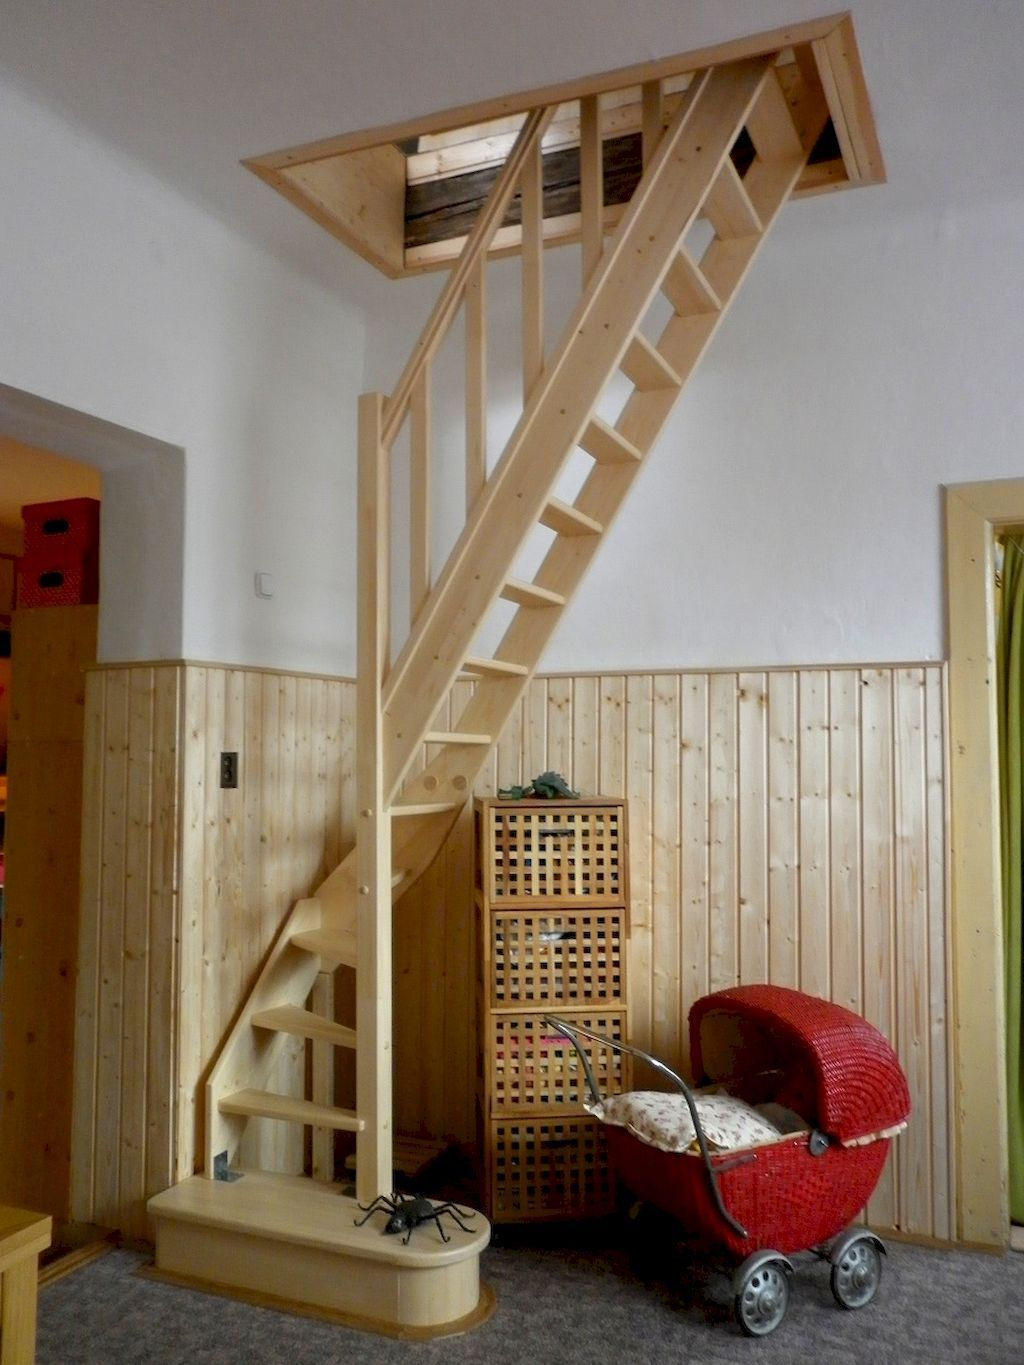 25 Amazing Great Home Projects And What They Cost Tiny House Loft Stairs Design Tiny House Decor